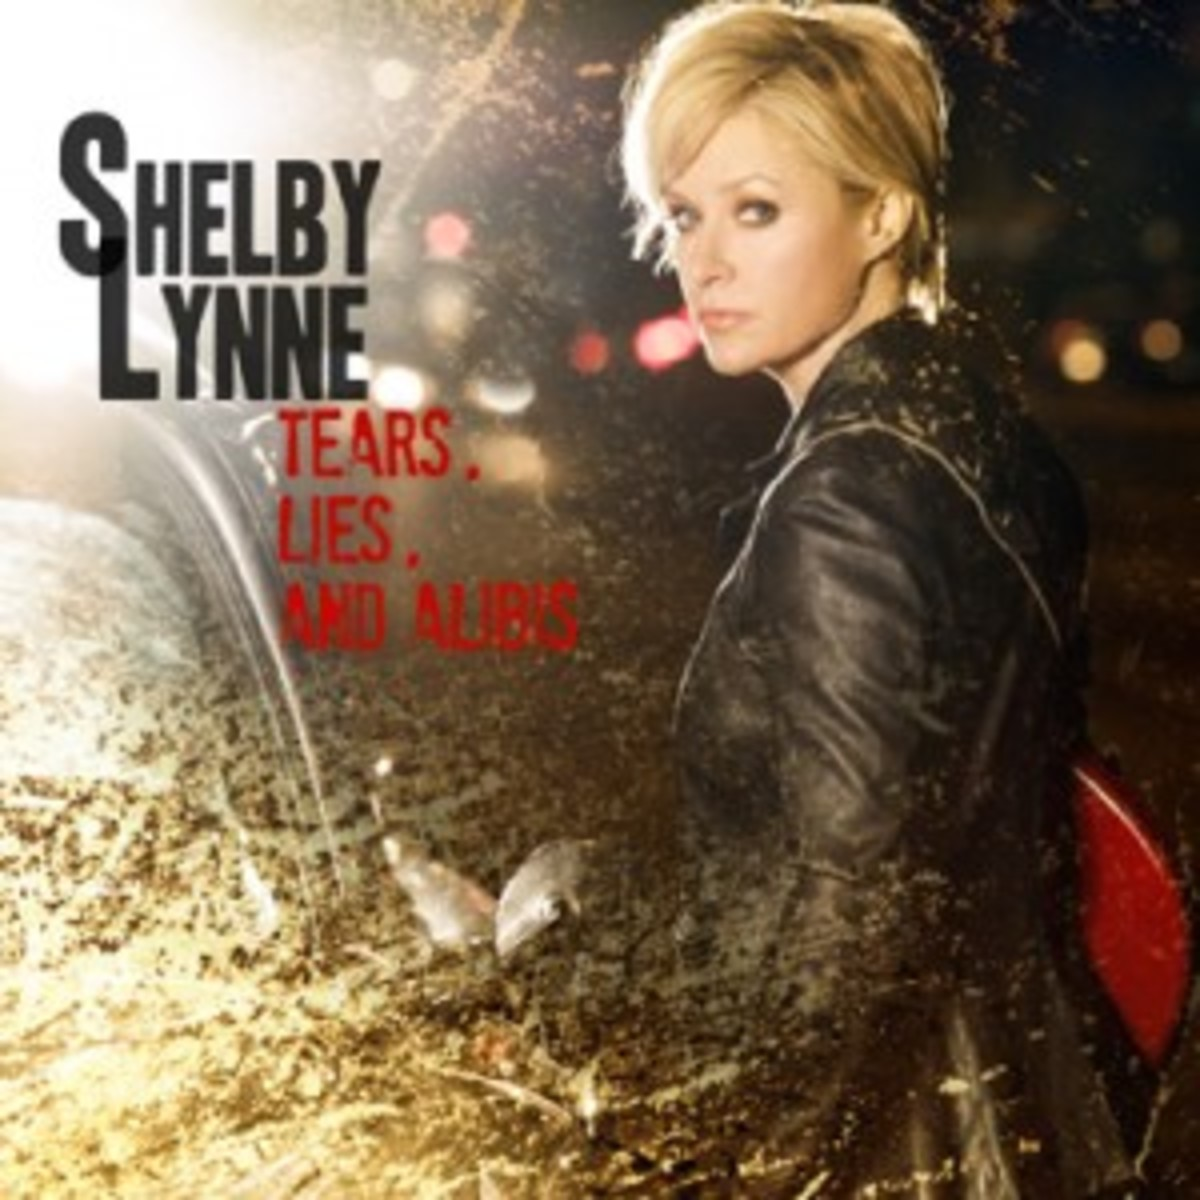 Shelby_Lynne_Record